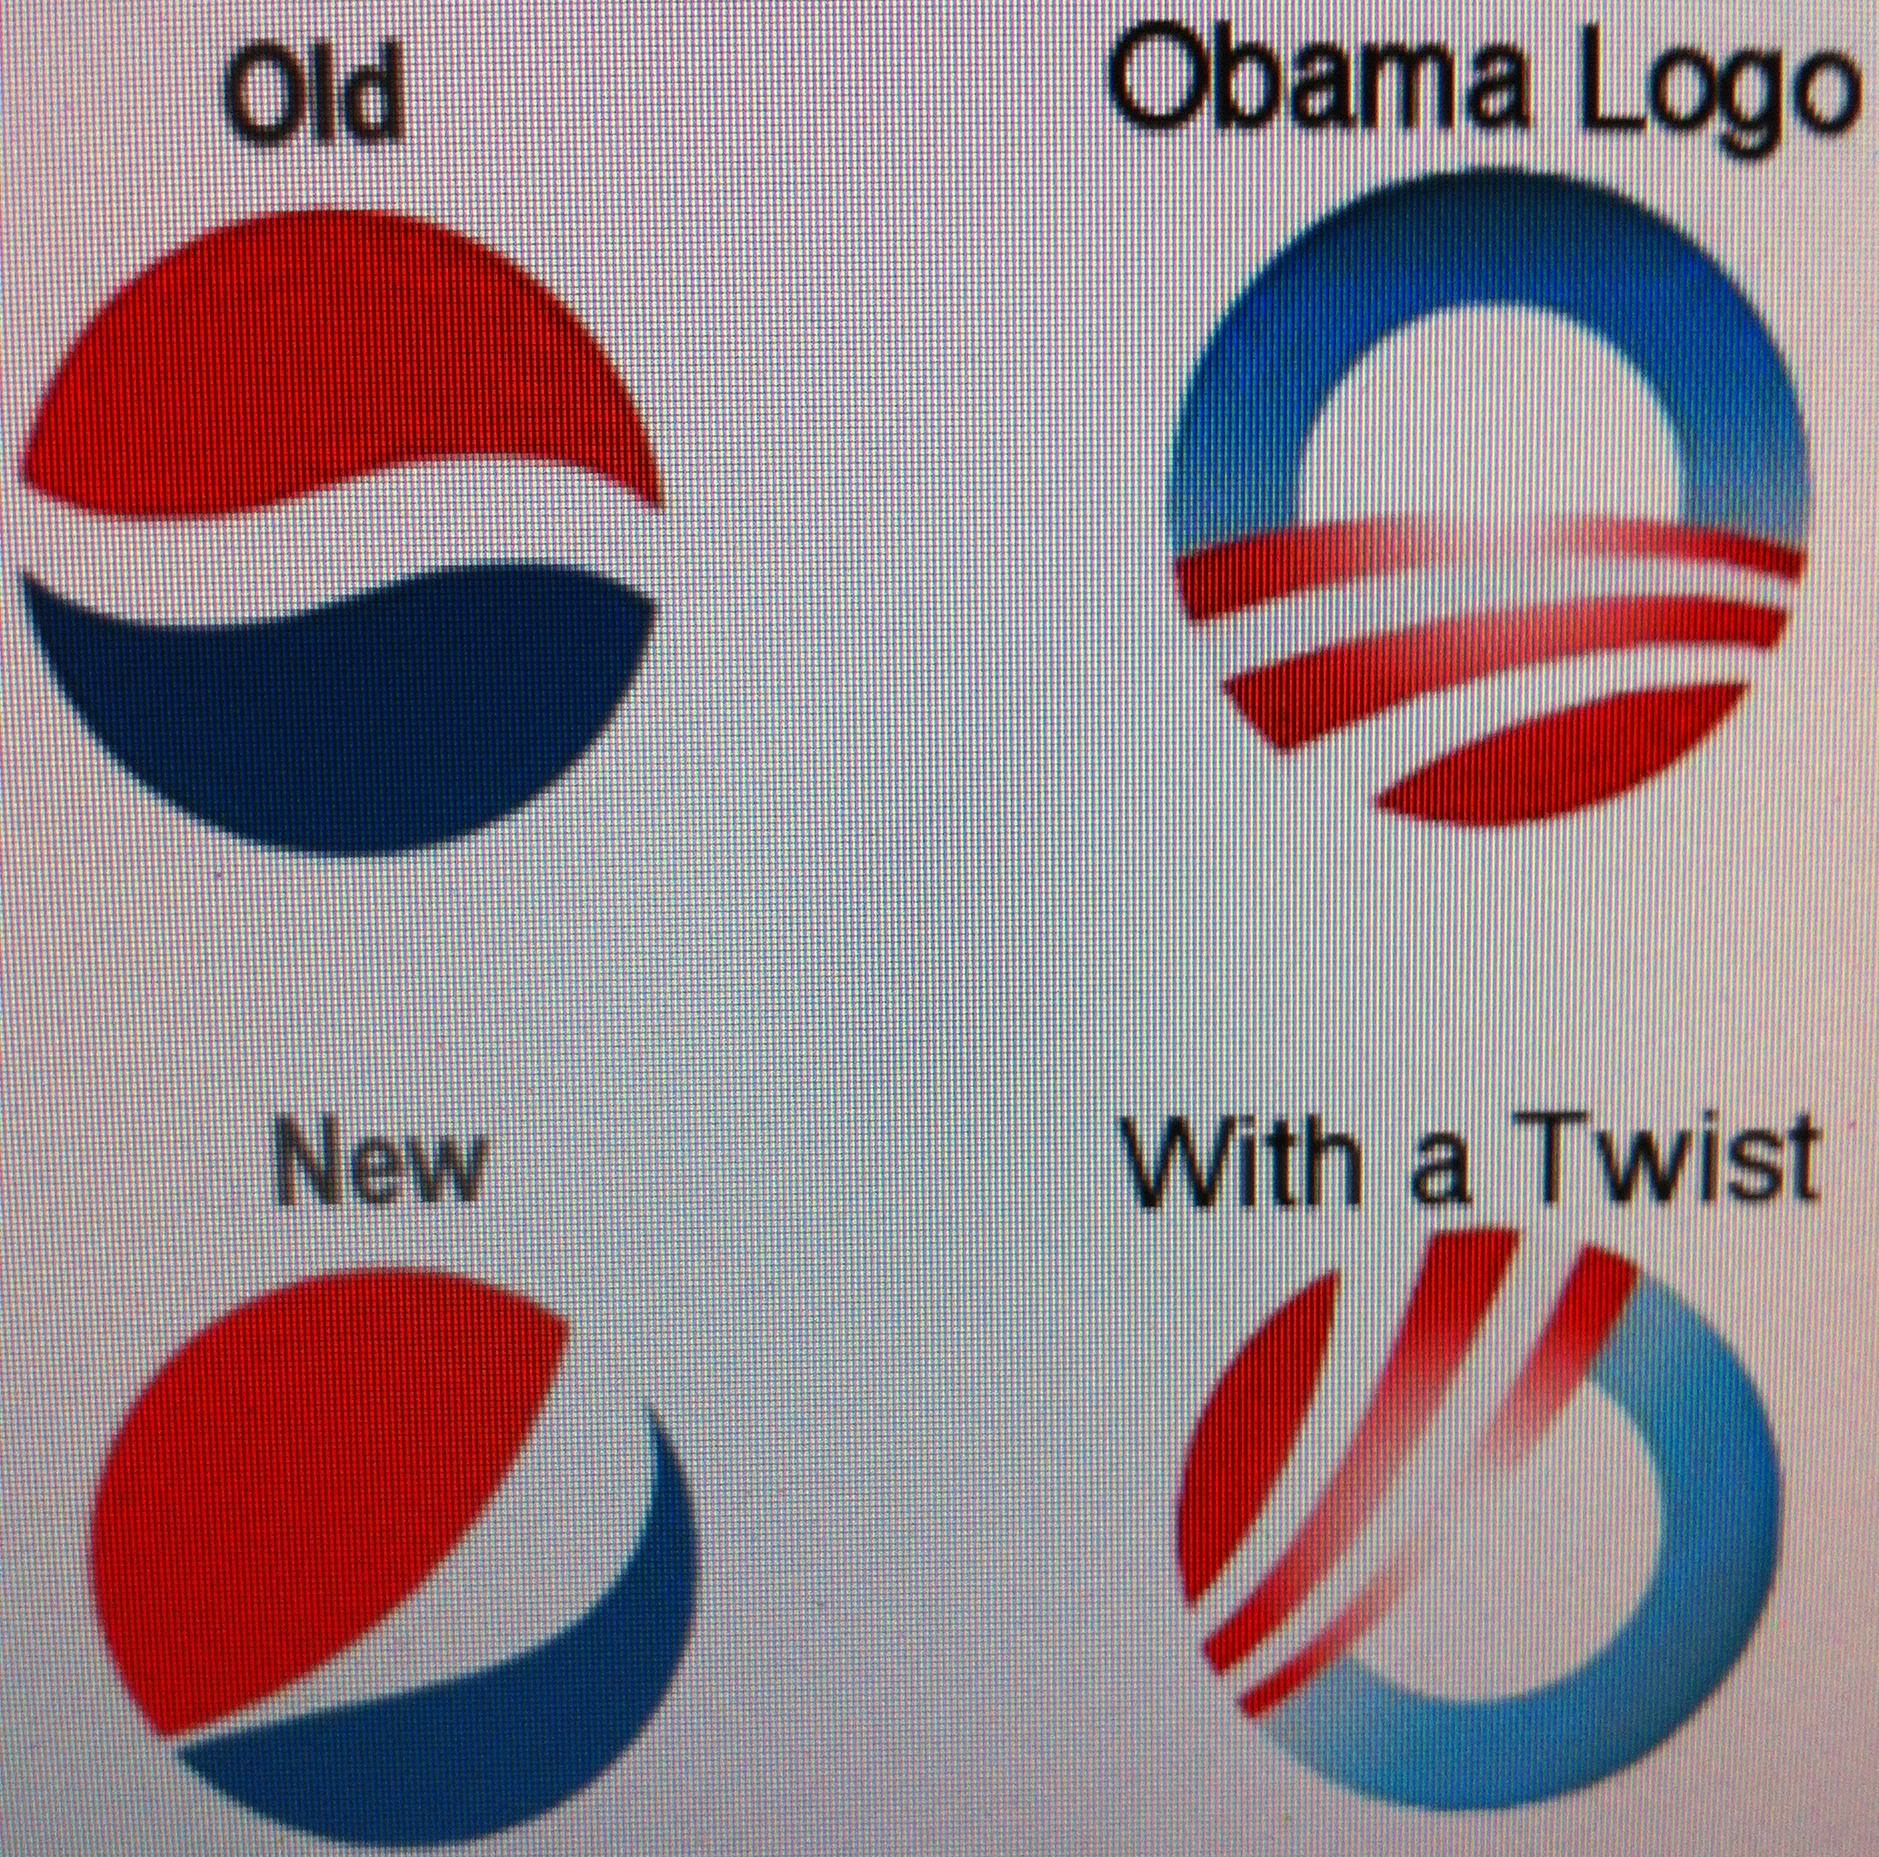 Pepsi obama logos conspiracy or coincidence once for all question buycottarizona